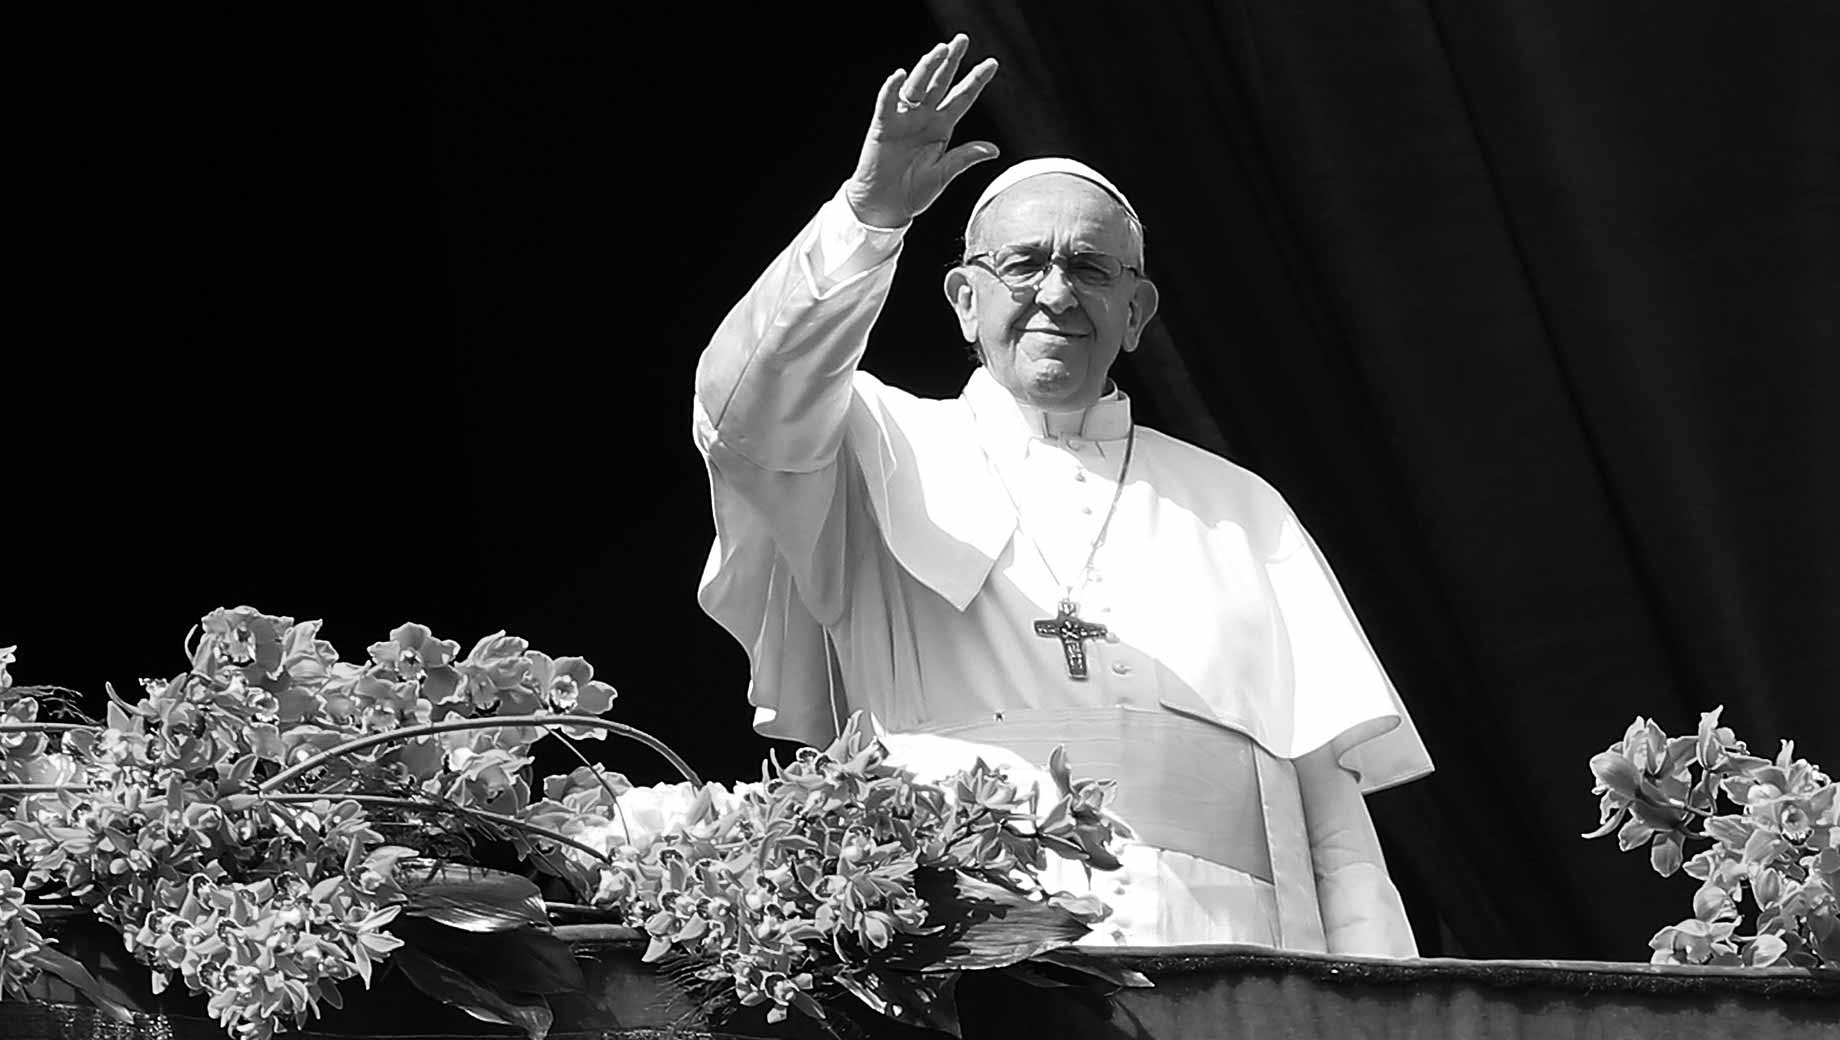 Pope Francis Favorability Down Sharply in U.S.